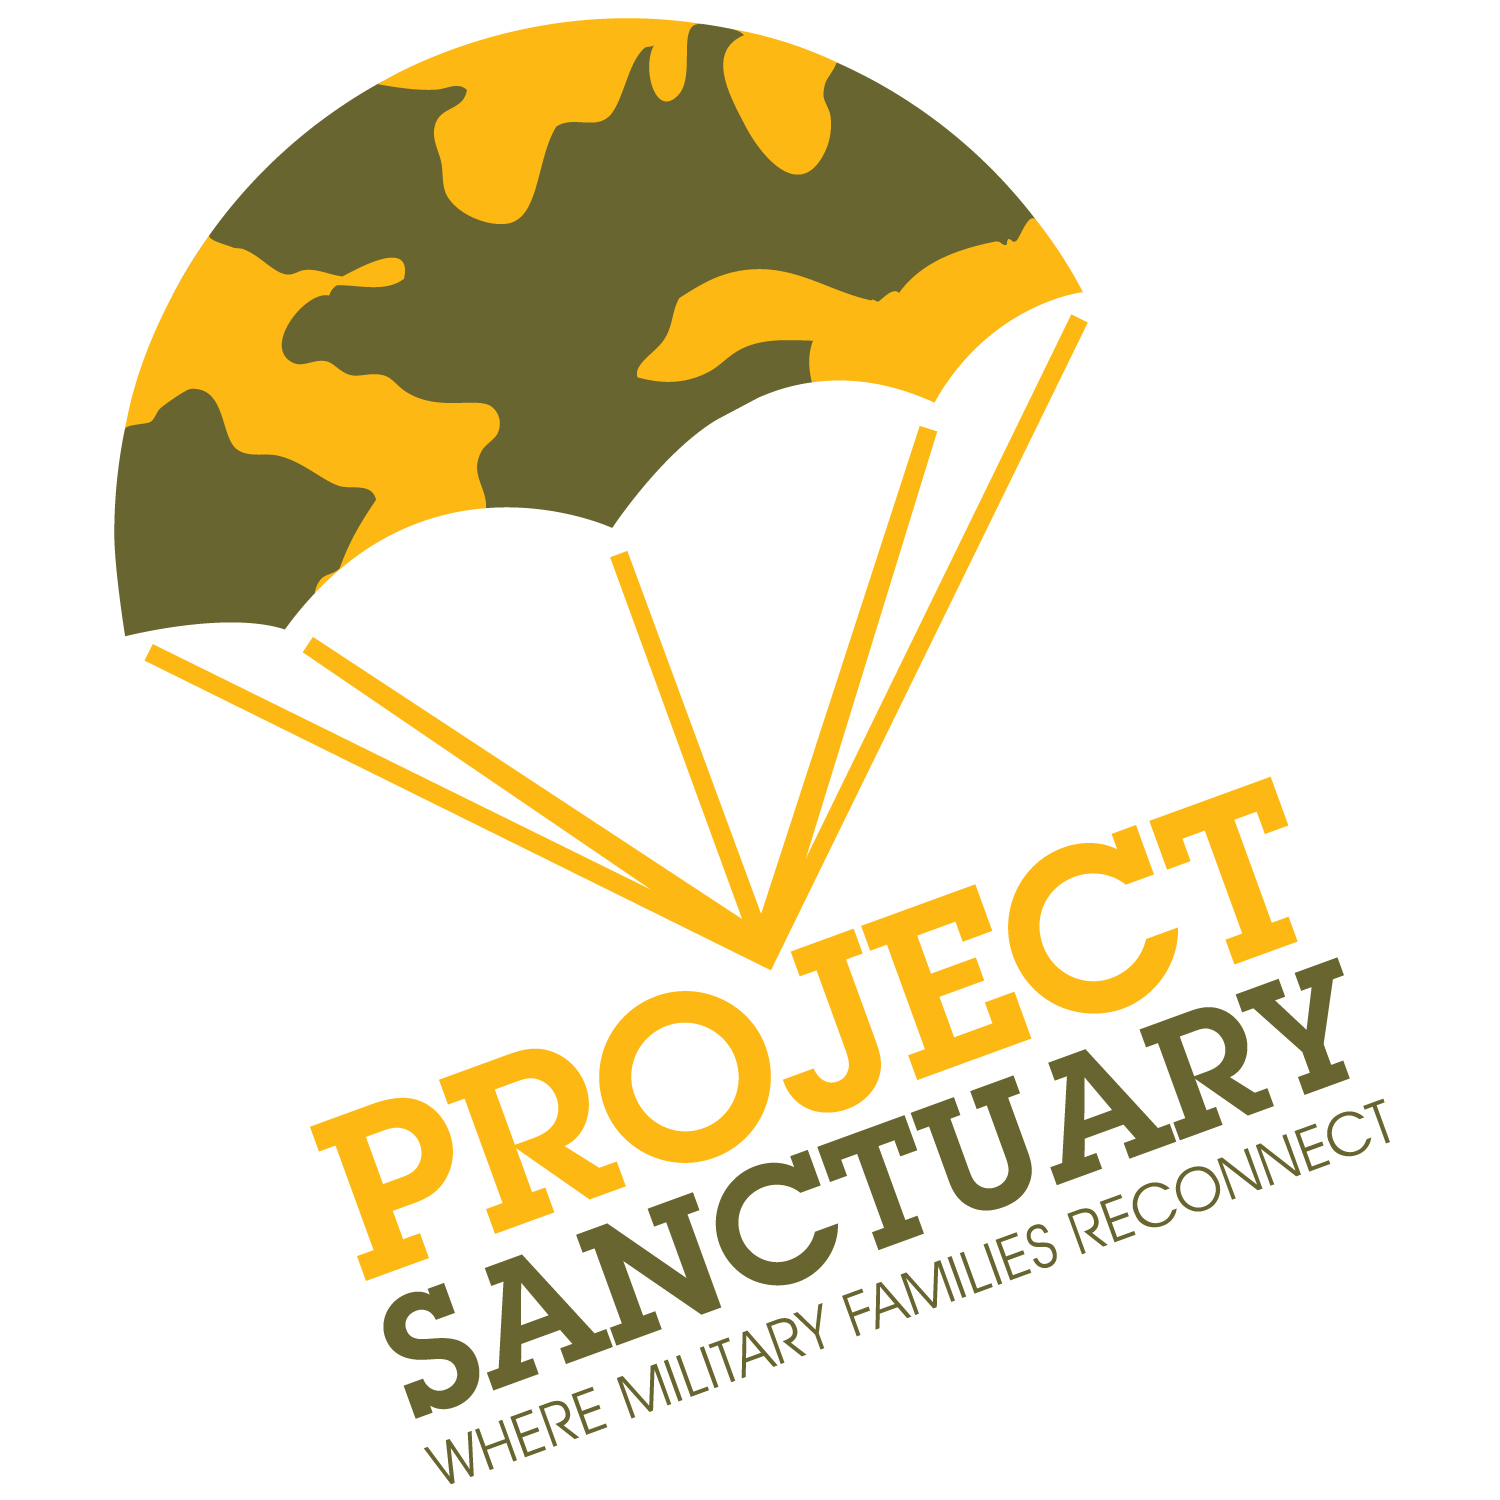 Project Sanctuary - All military/veteran families who contact us, or who are referred to us, are first assessed to determine if they need support and services now (i.e., immediate help) or if they may be scheduled for a retreat. Both options are geared toward reconnecting the families to each other and to their communities. All services provided are intended to help the families thrive today and into the future. We provide two years of after-care for the family. All of our services are provided free of charge to participating military families.We assist the military service members by helping them heal from the effects of war and PTS, provide a safe place to heal, help reconnect the family unit and treat all members of the family at their level of need—which enables the service member to reintegrate into their family and community successfully. Our programs focus on the entire family's mental health and well-being first as we take them through the steps towards creating a sustainable balanced and thriving family – and life.